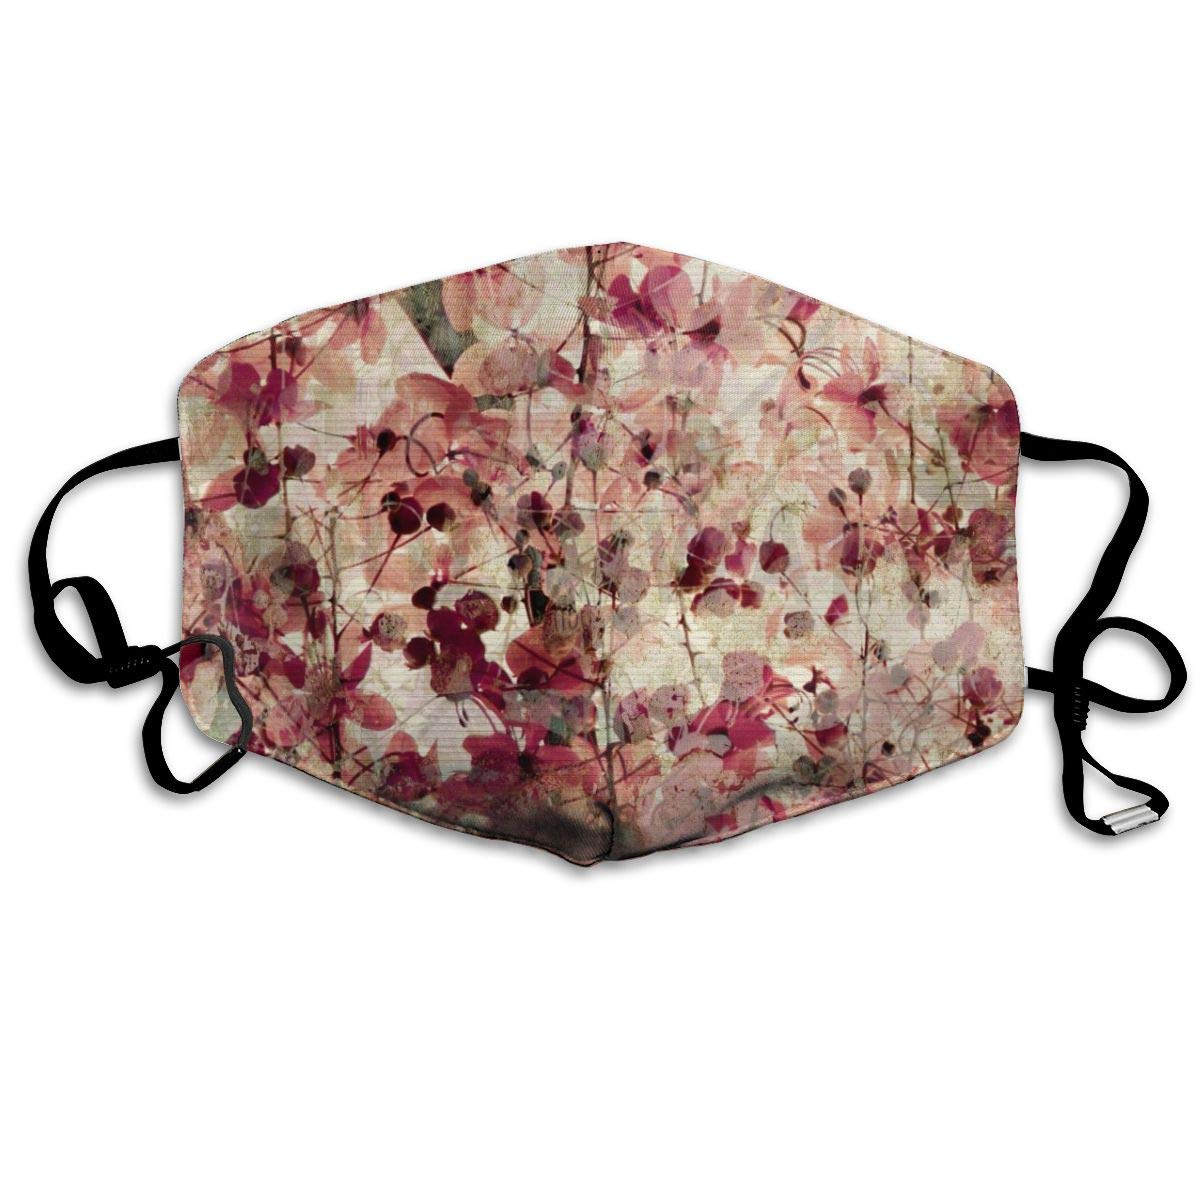 Mouth Mask Retro Cherry Blossoms Floral Print Masks - Breathable Adjustable Windproof Mouth-Muffle, Camping Running For Women